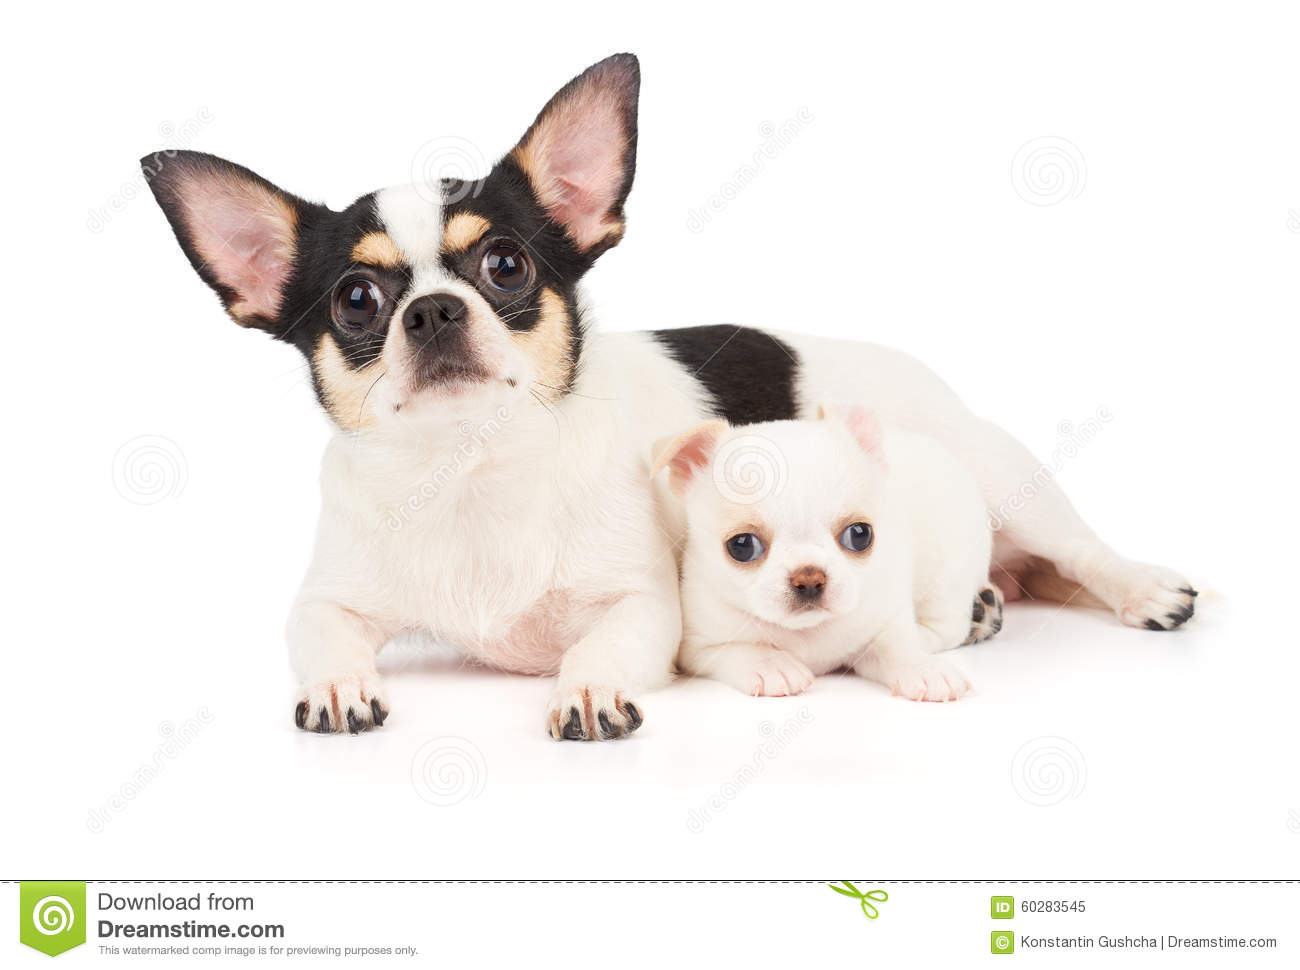 Chihuahua Mother And Its Puppy Stock Photo - Image: 60283545